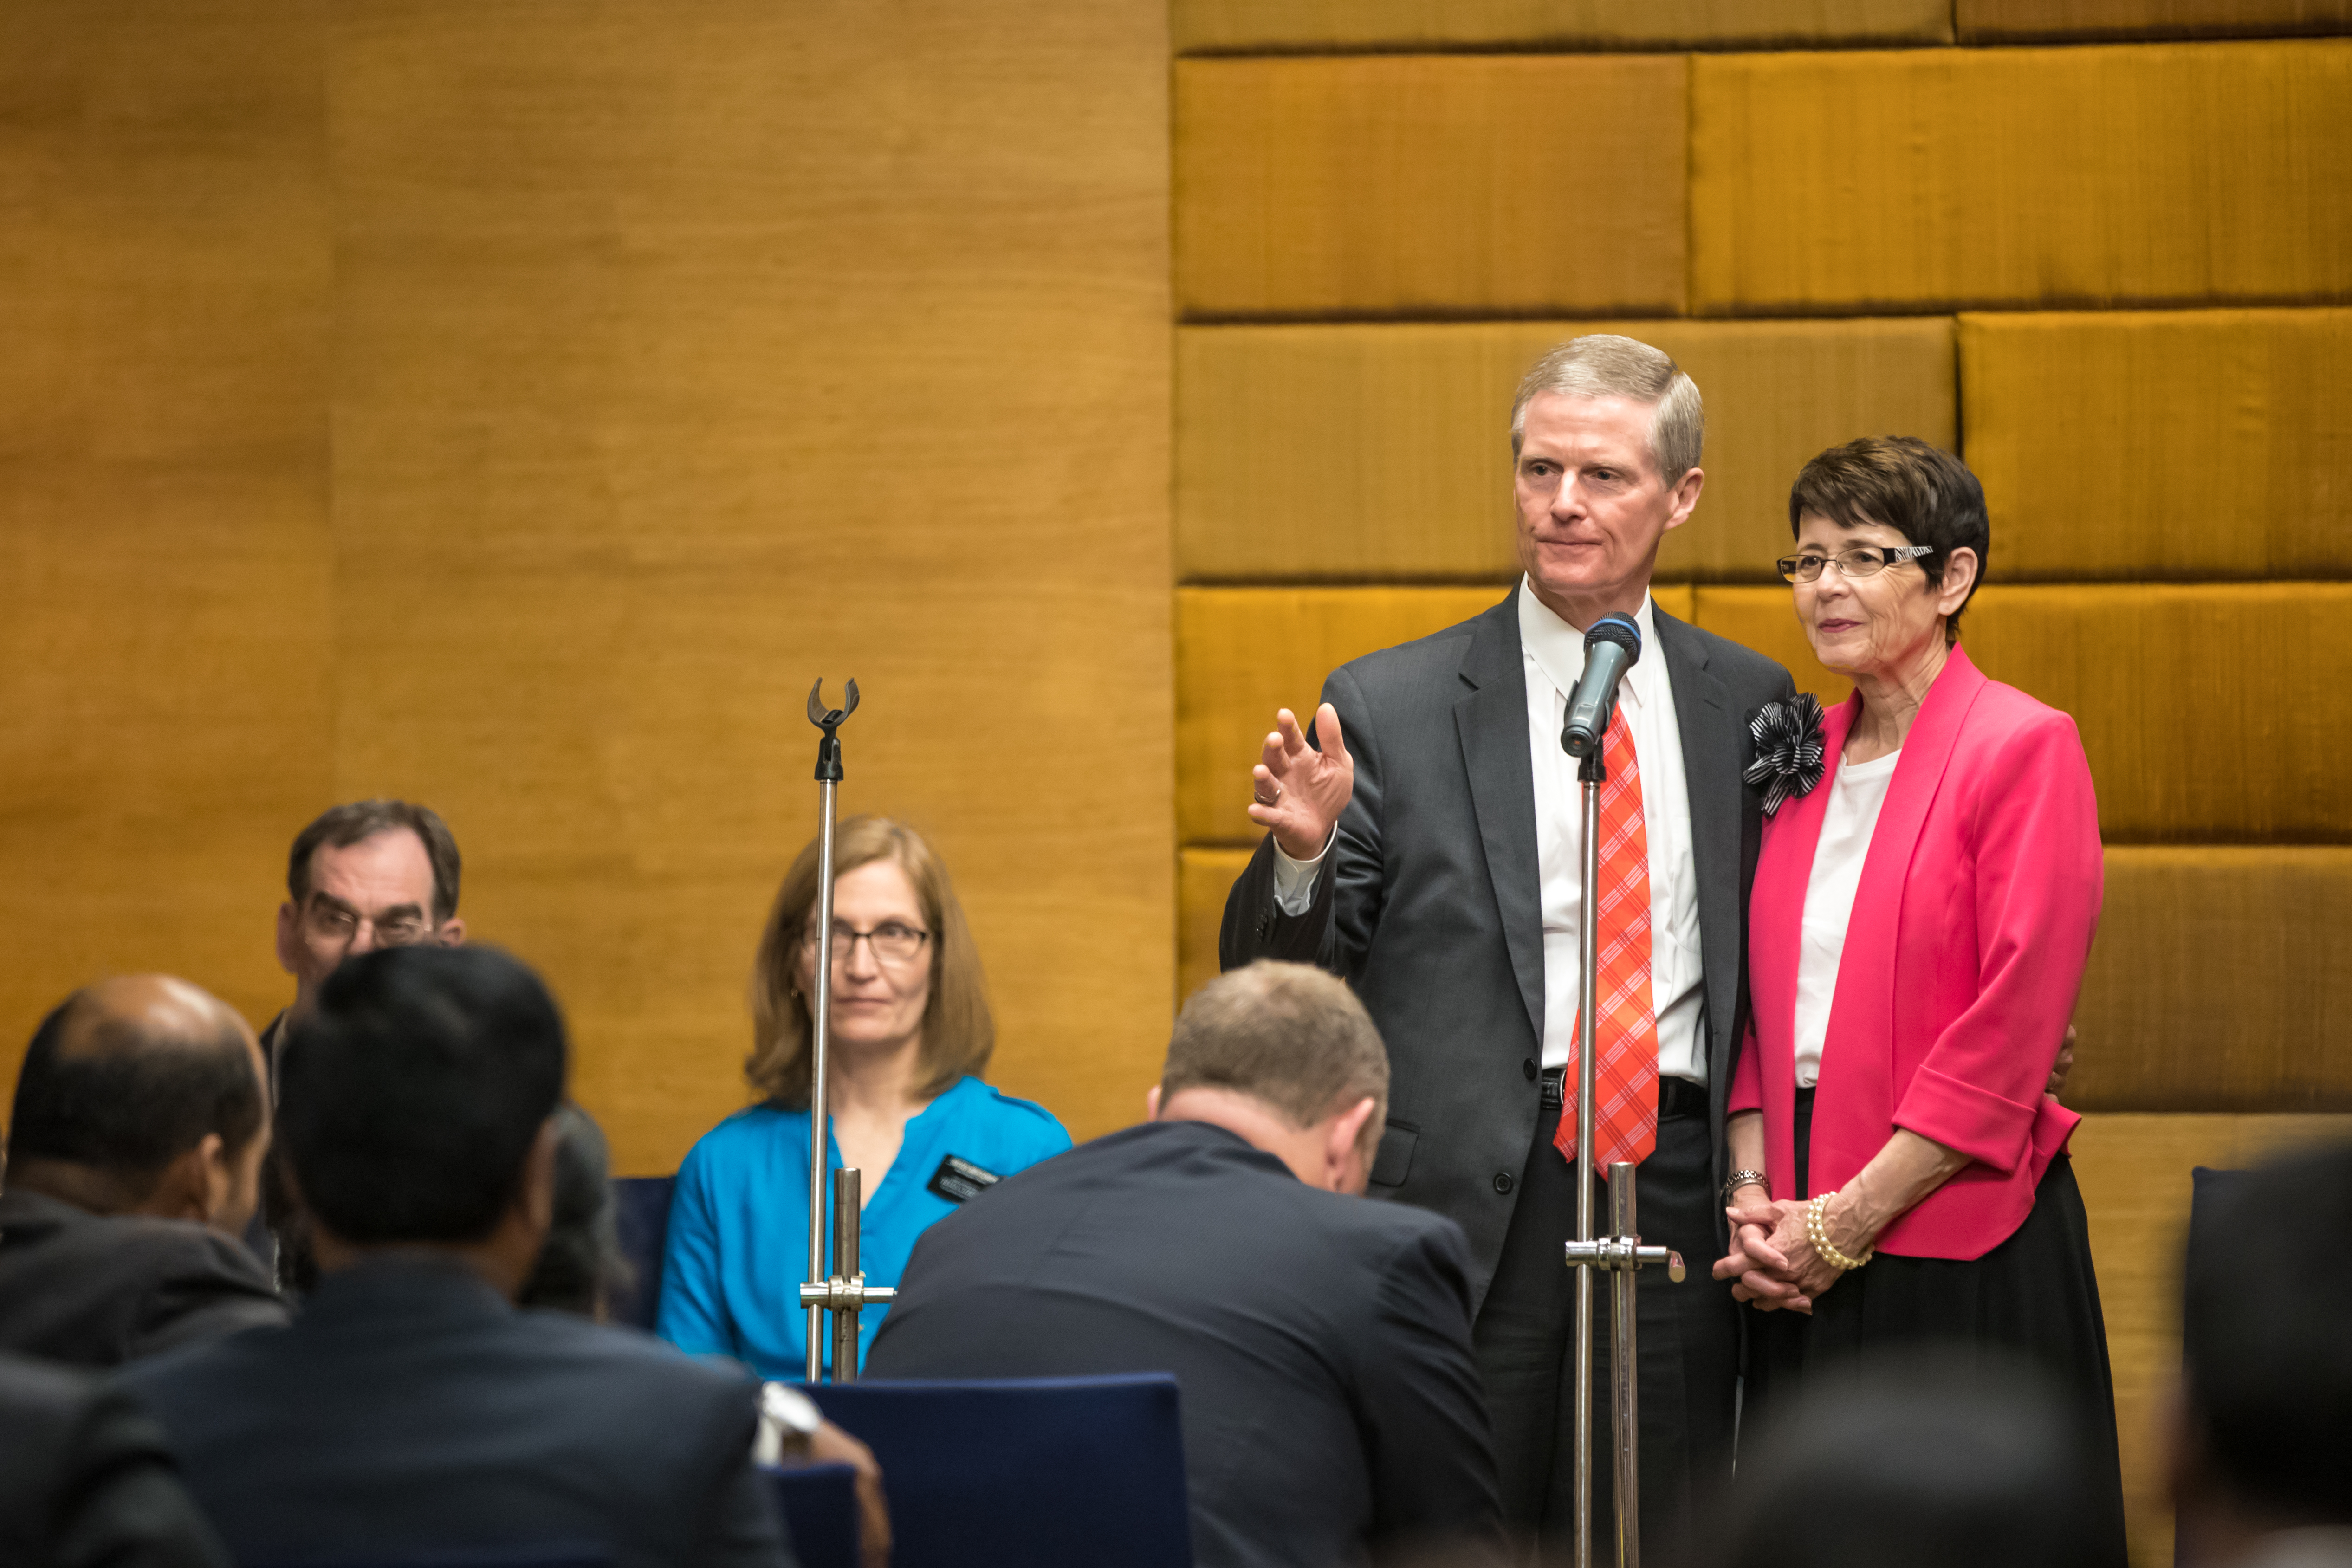 Elder David A. Bednar and his wife, Sister Susan R. Bednar, answer questions during a member meeting in Hyderabad, India. The Bednars will speak at this year's RootsTech, scheduled for Feb. 27-March 2 at the Salt Palace Convention Center.